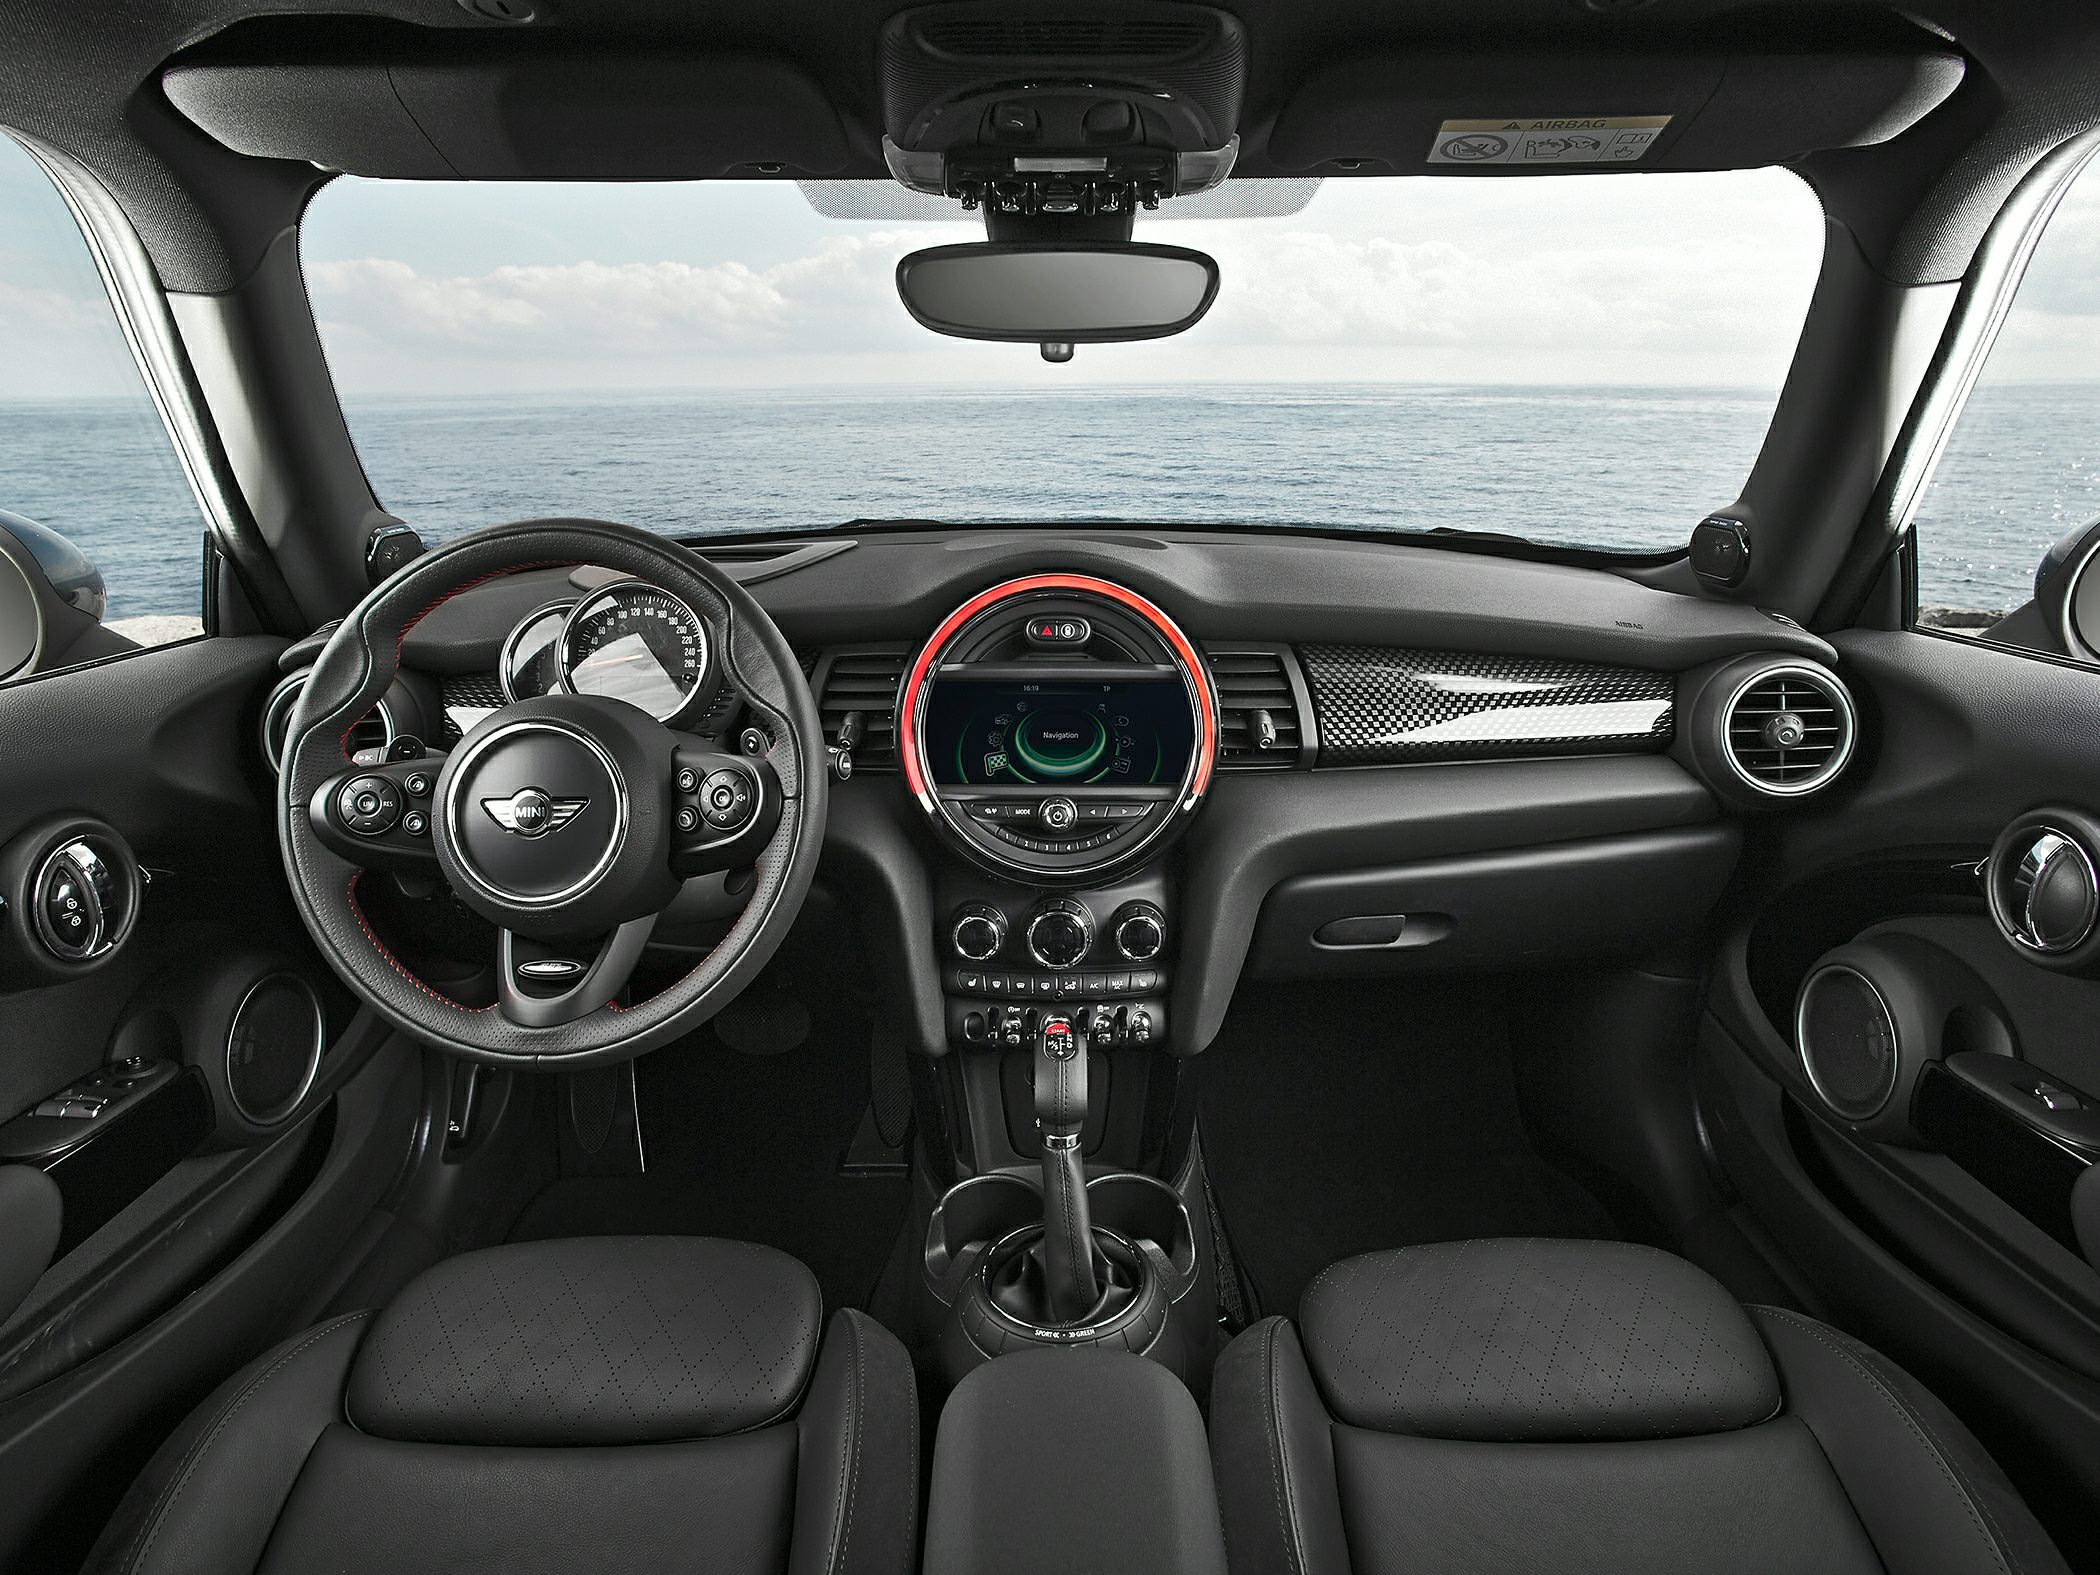 2014 Mini Hardtop Glamour Interior